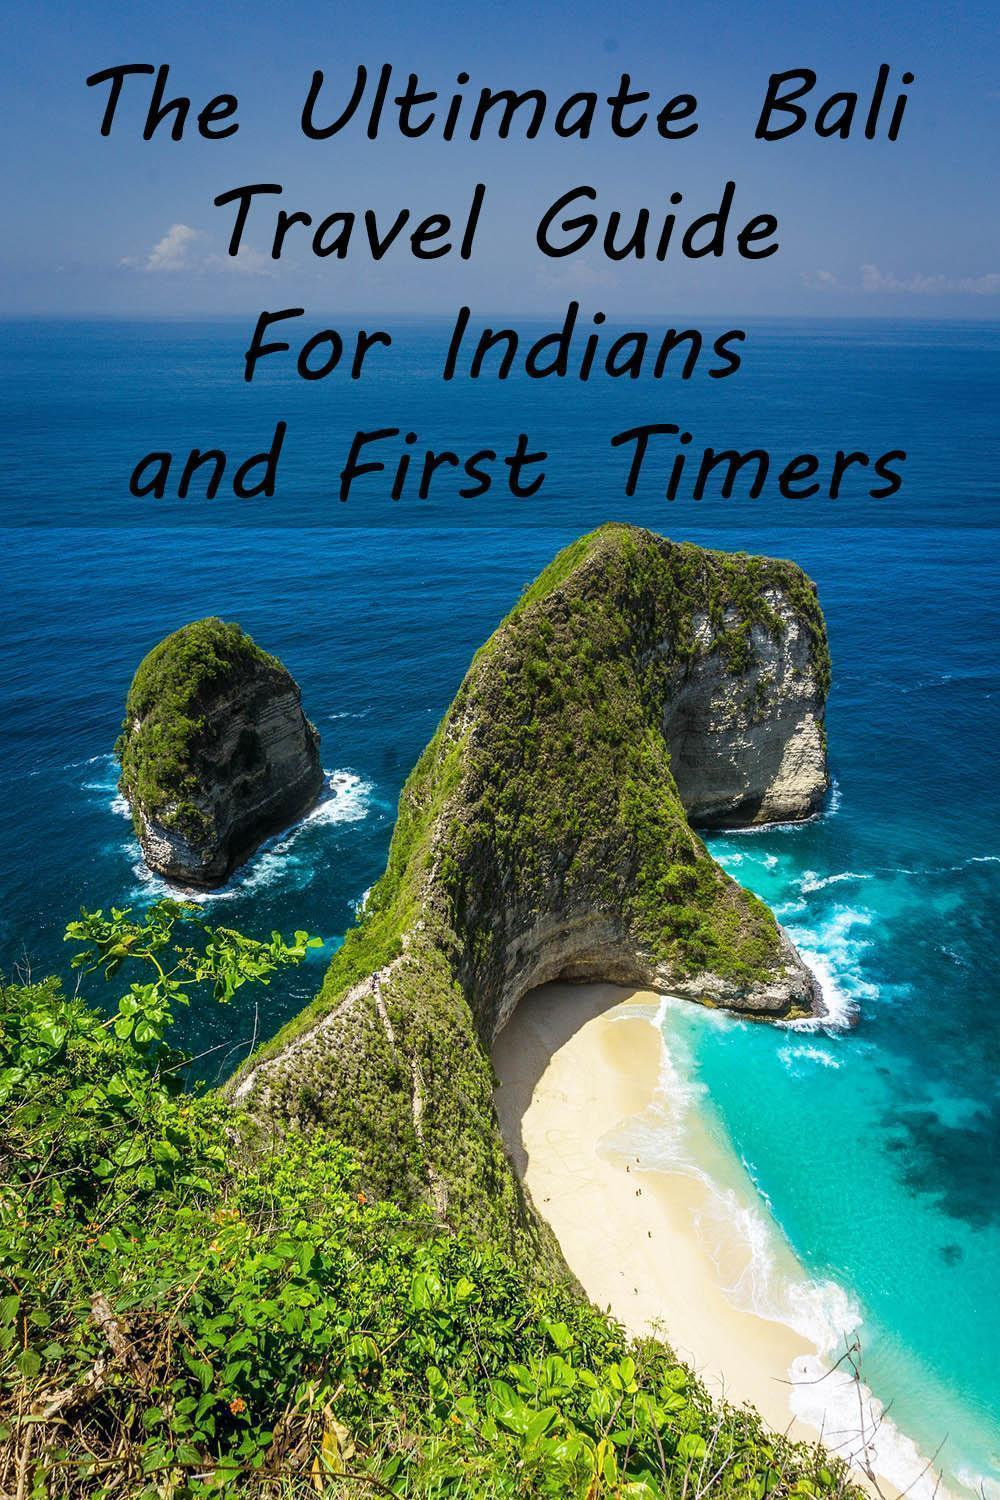 The Ultimate Bali Travel Guide For Indians and First Timers